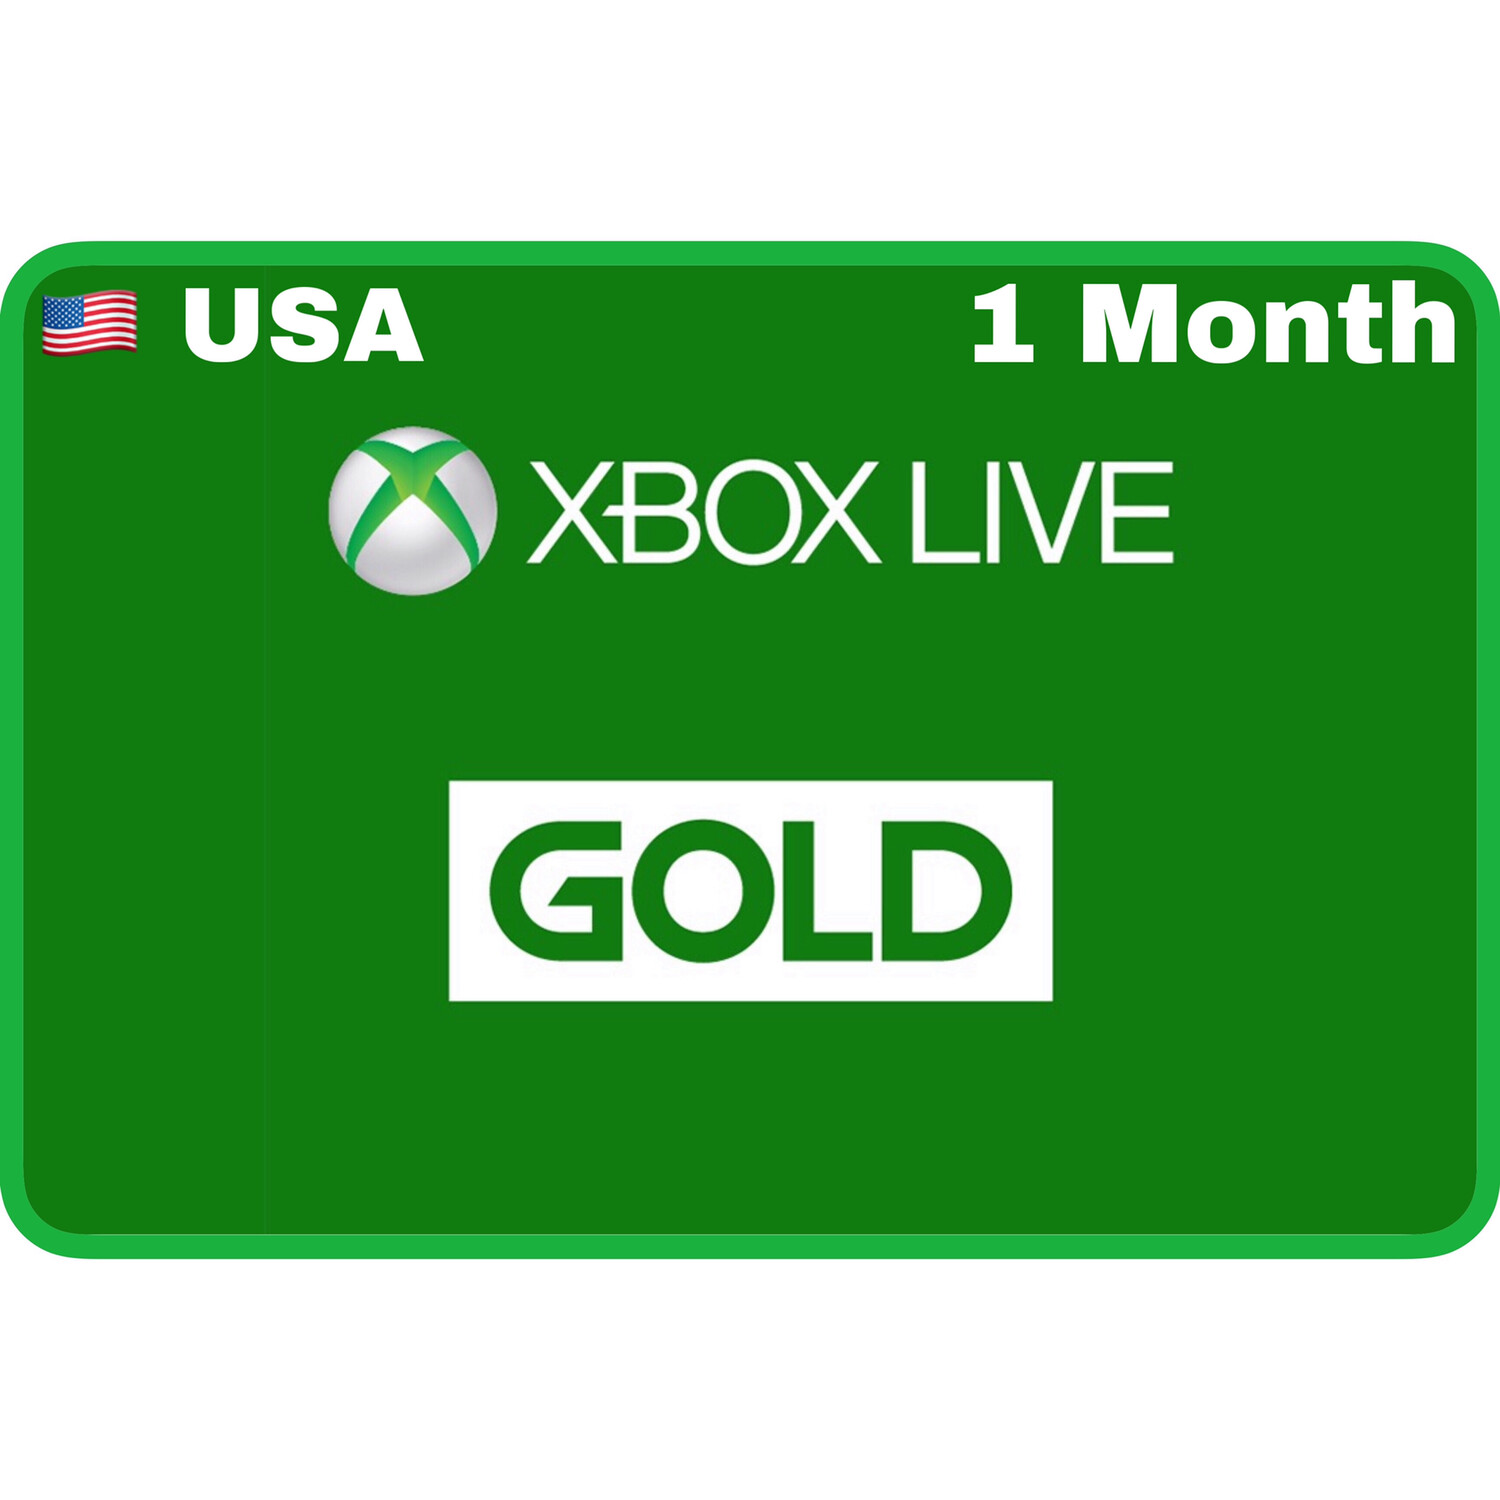 Xbox Live 1 Month Gold USA